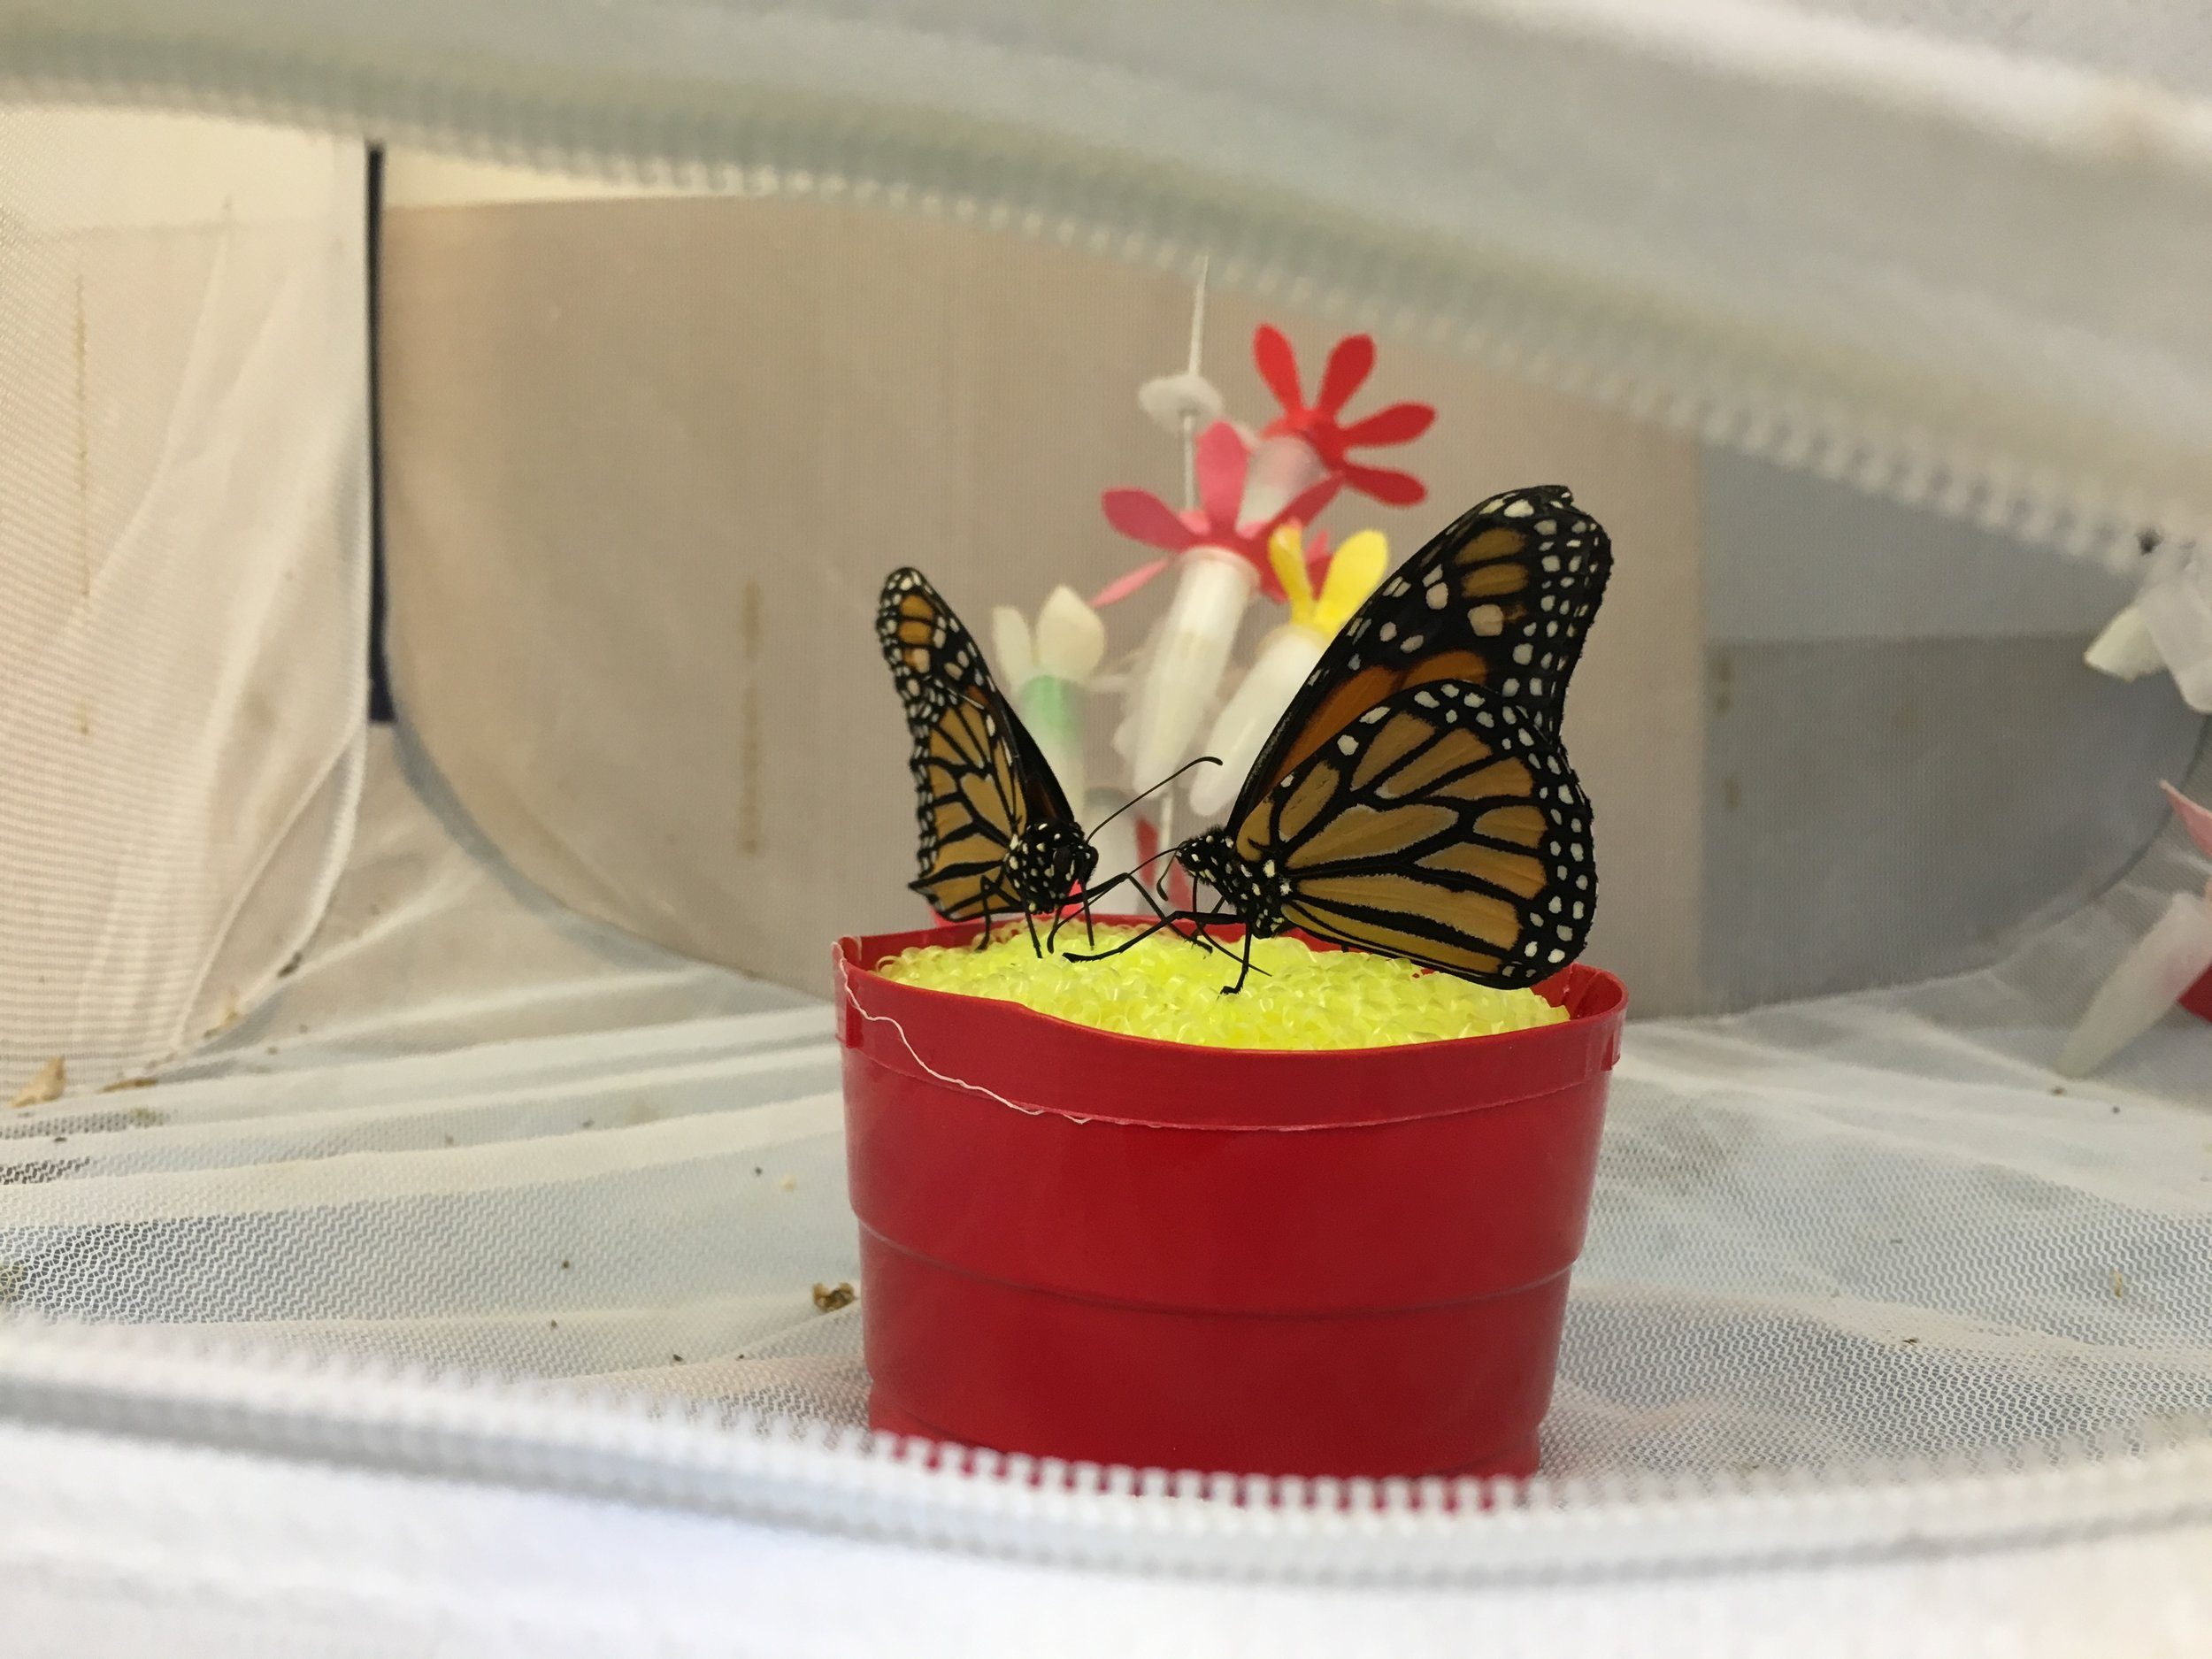 Butterflies feeding from a yellow sponge soaked in nectar inside a red plastic cup.